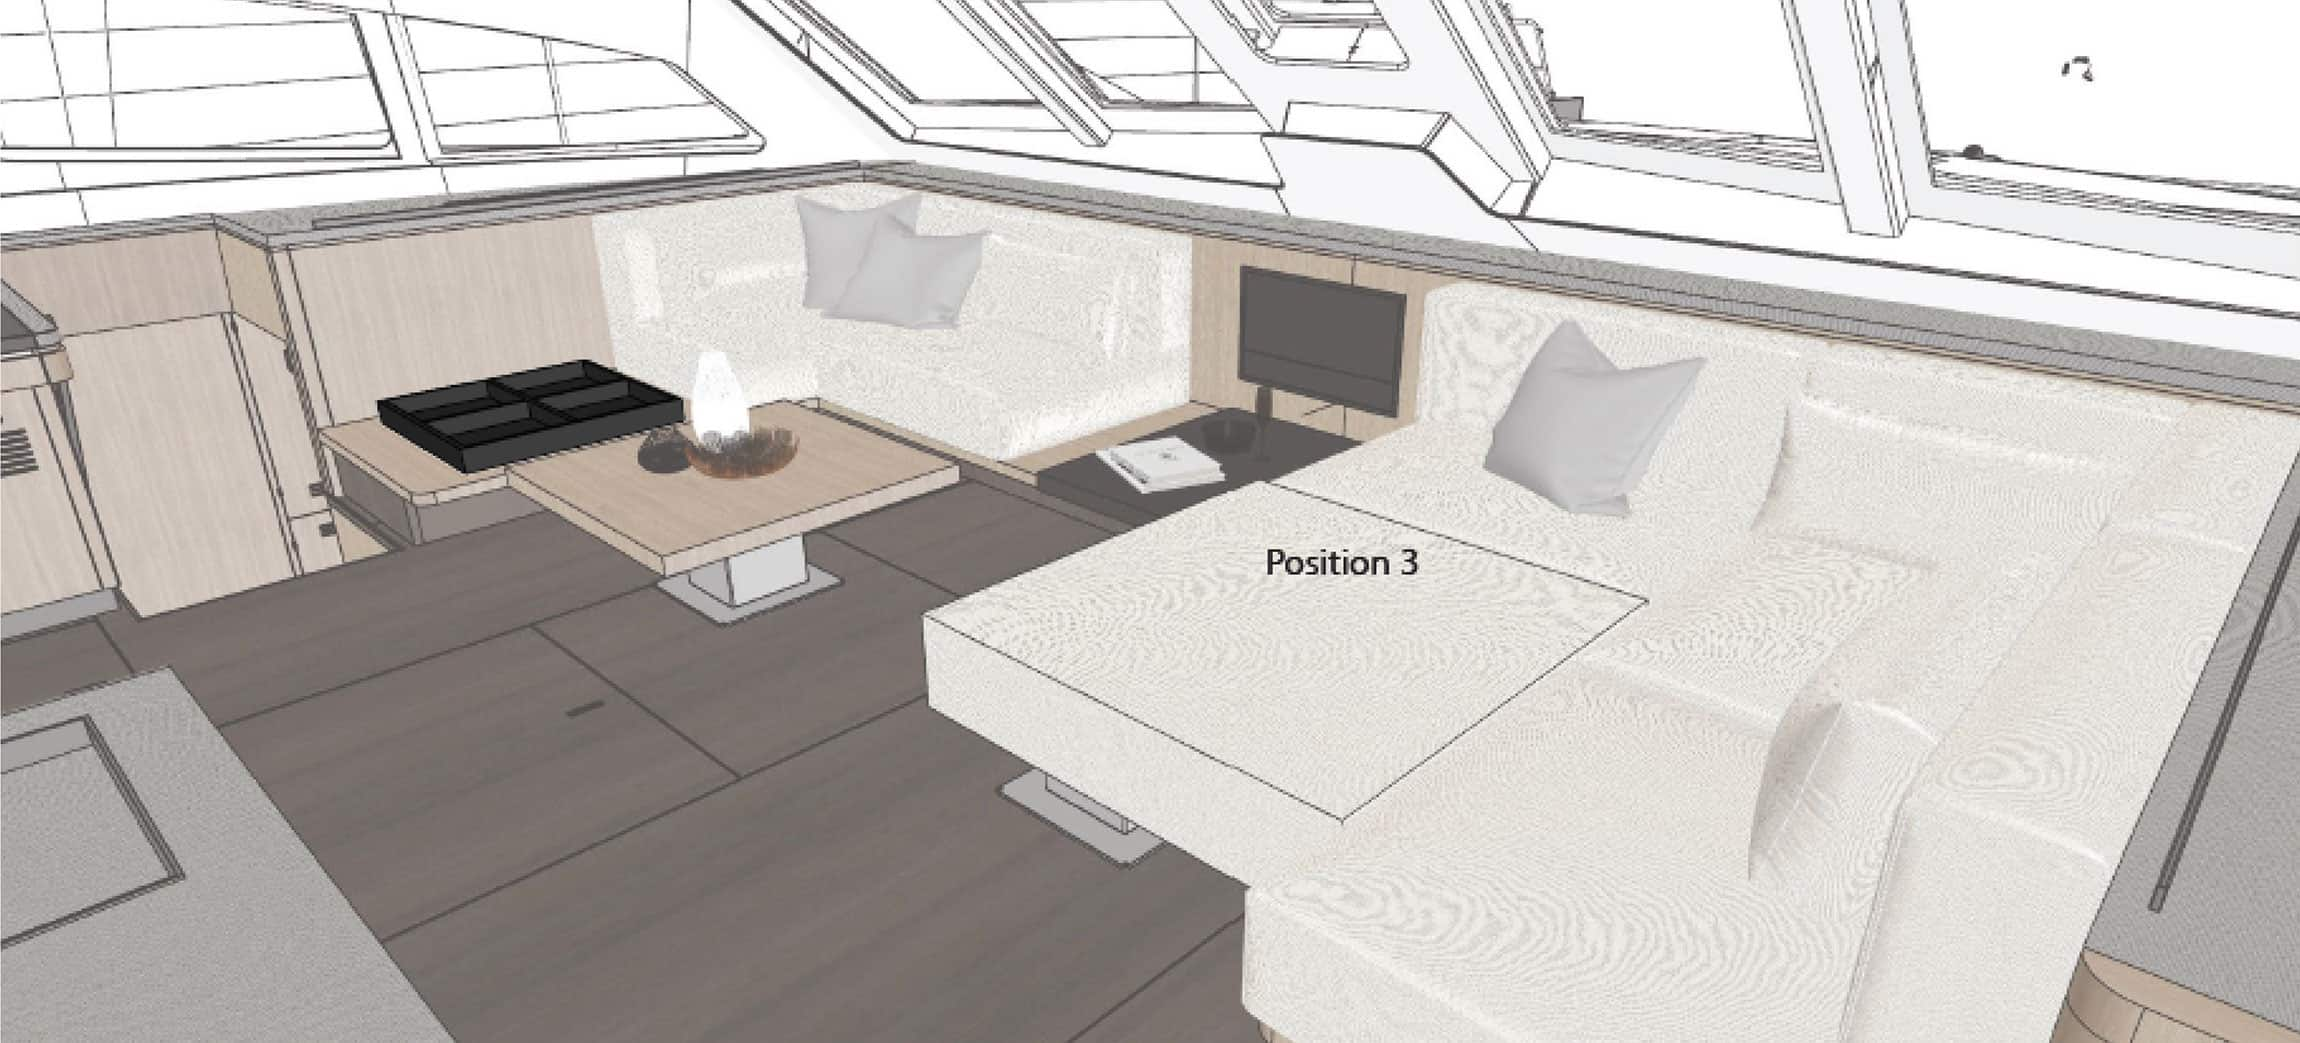 The cushion in position 3 to make a large lounge area.